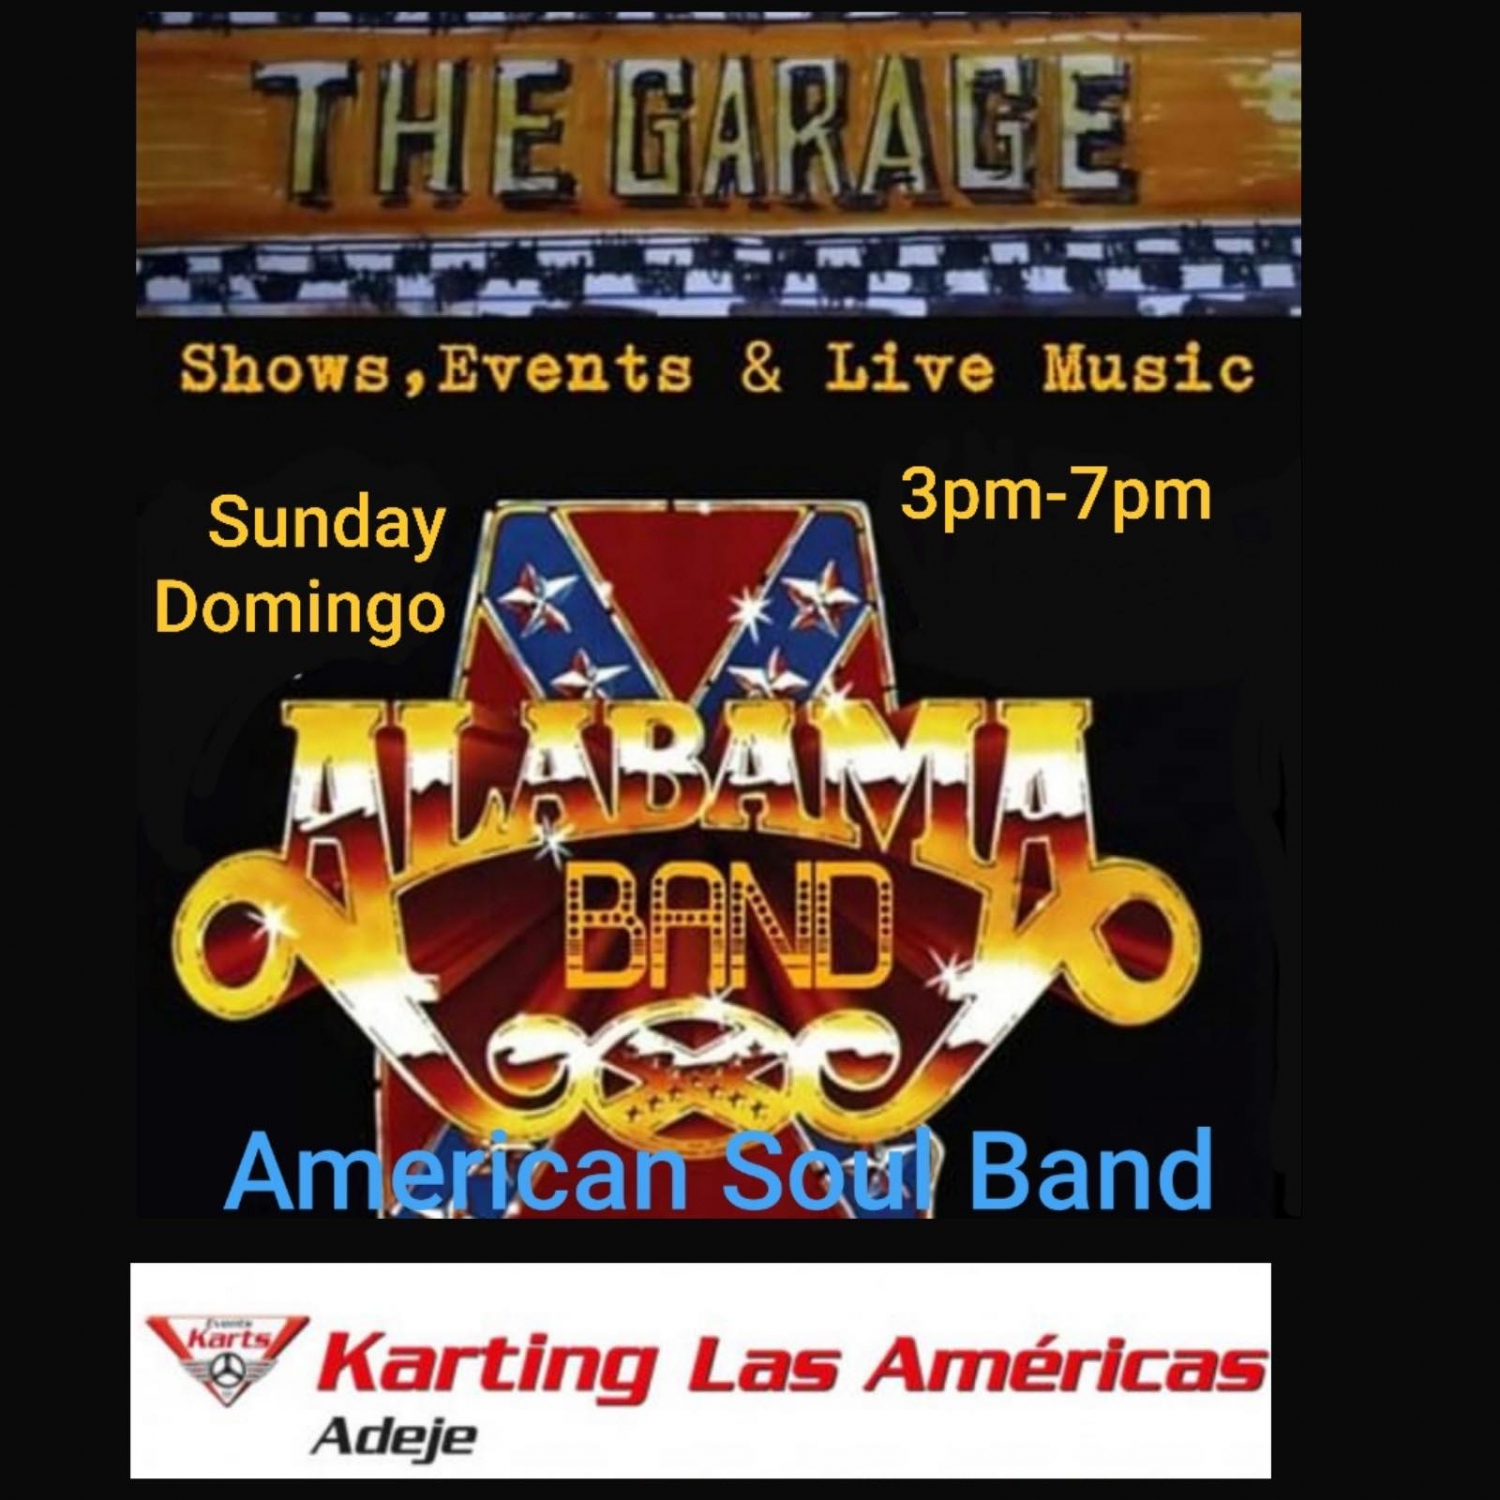 Alabama Northern Soul Band - Live at The Garage.